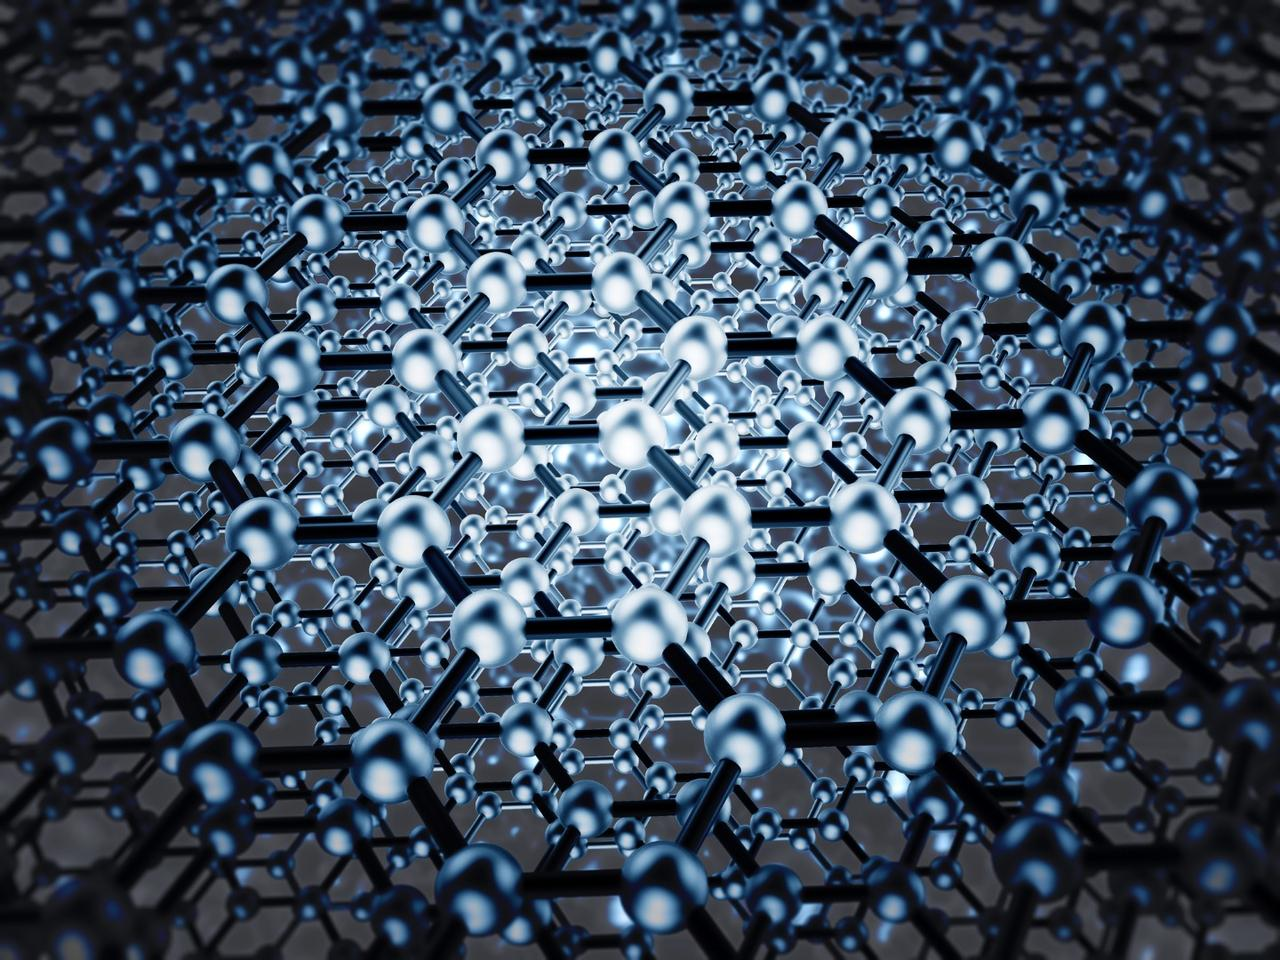 Researchers have developed a new graphene production technique thatcuts the amount of solvent required by up to half